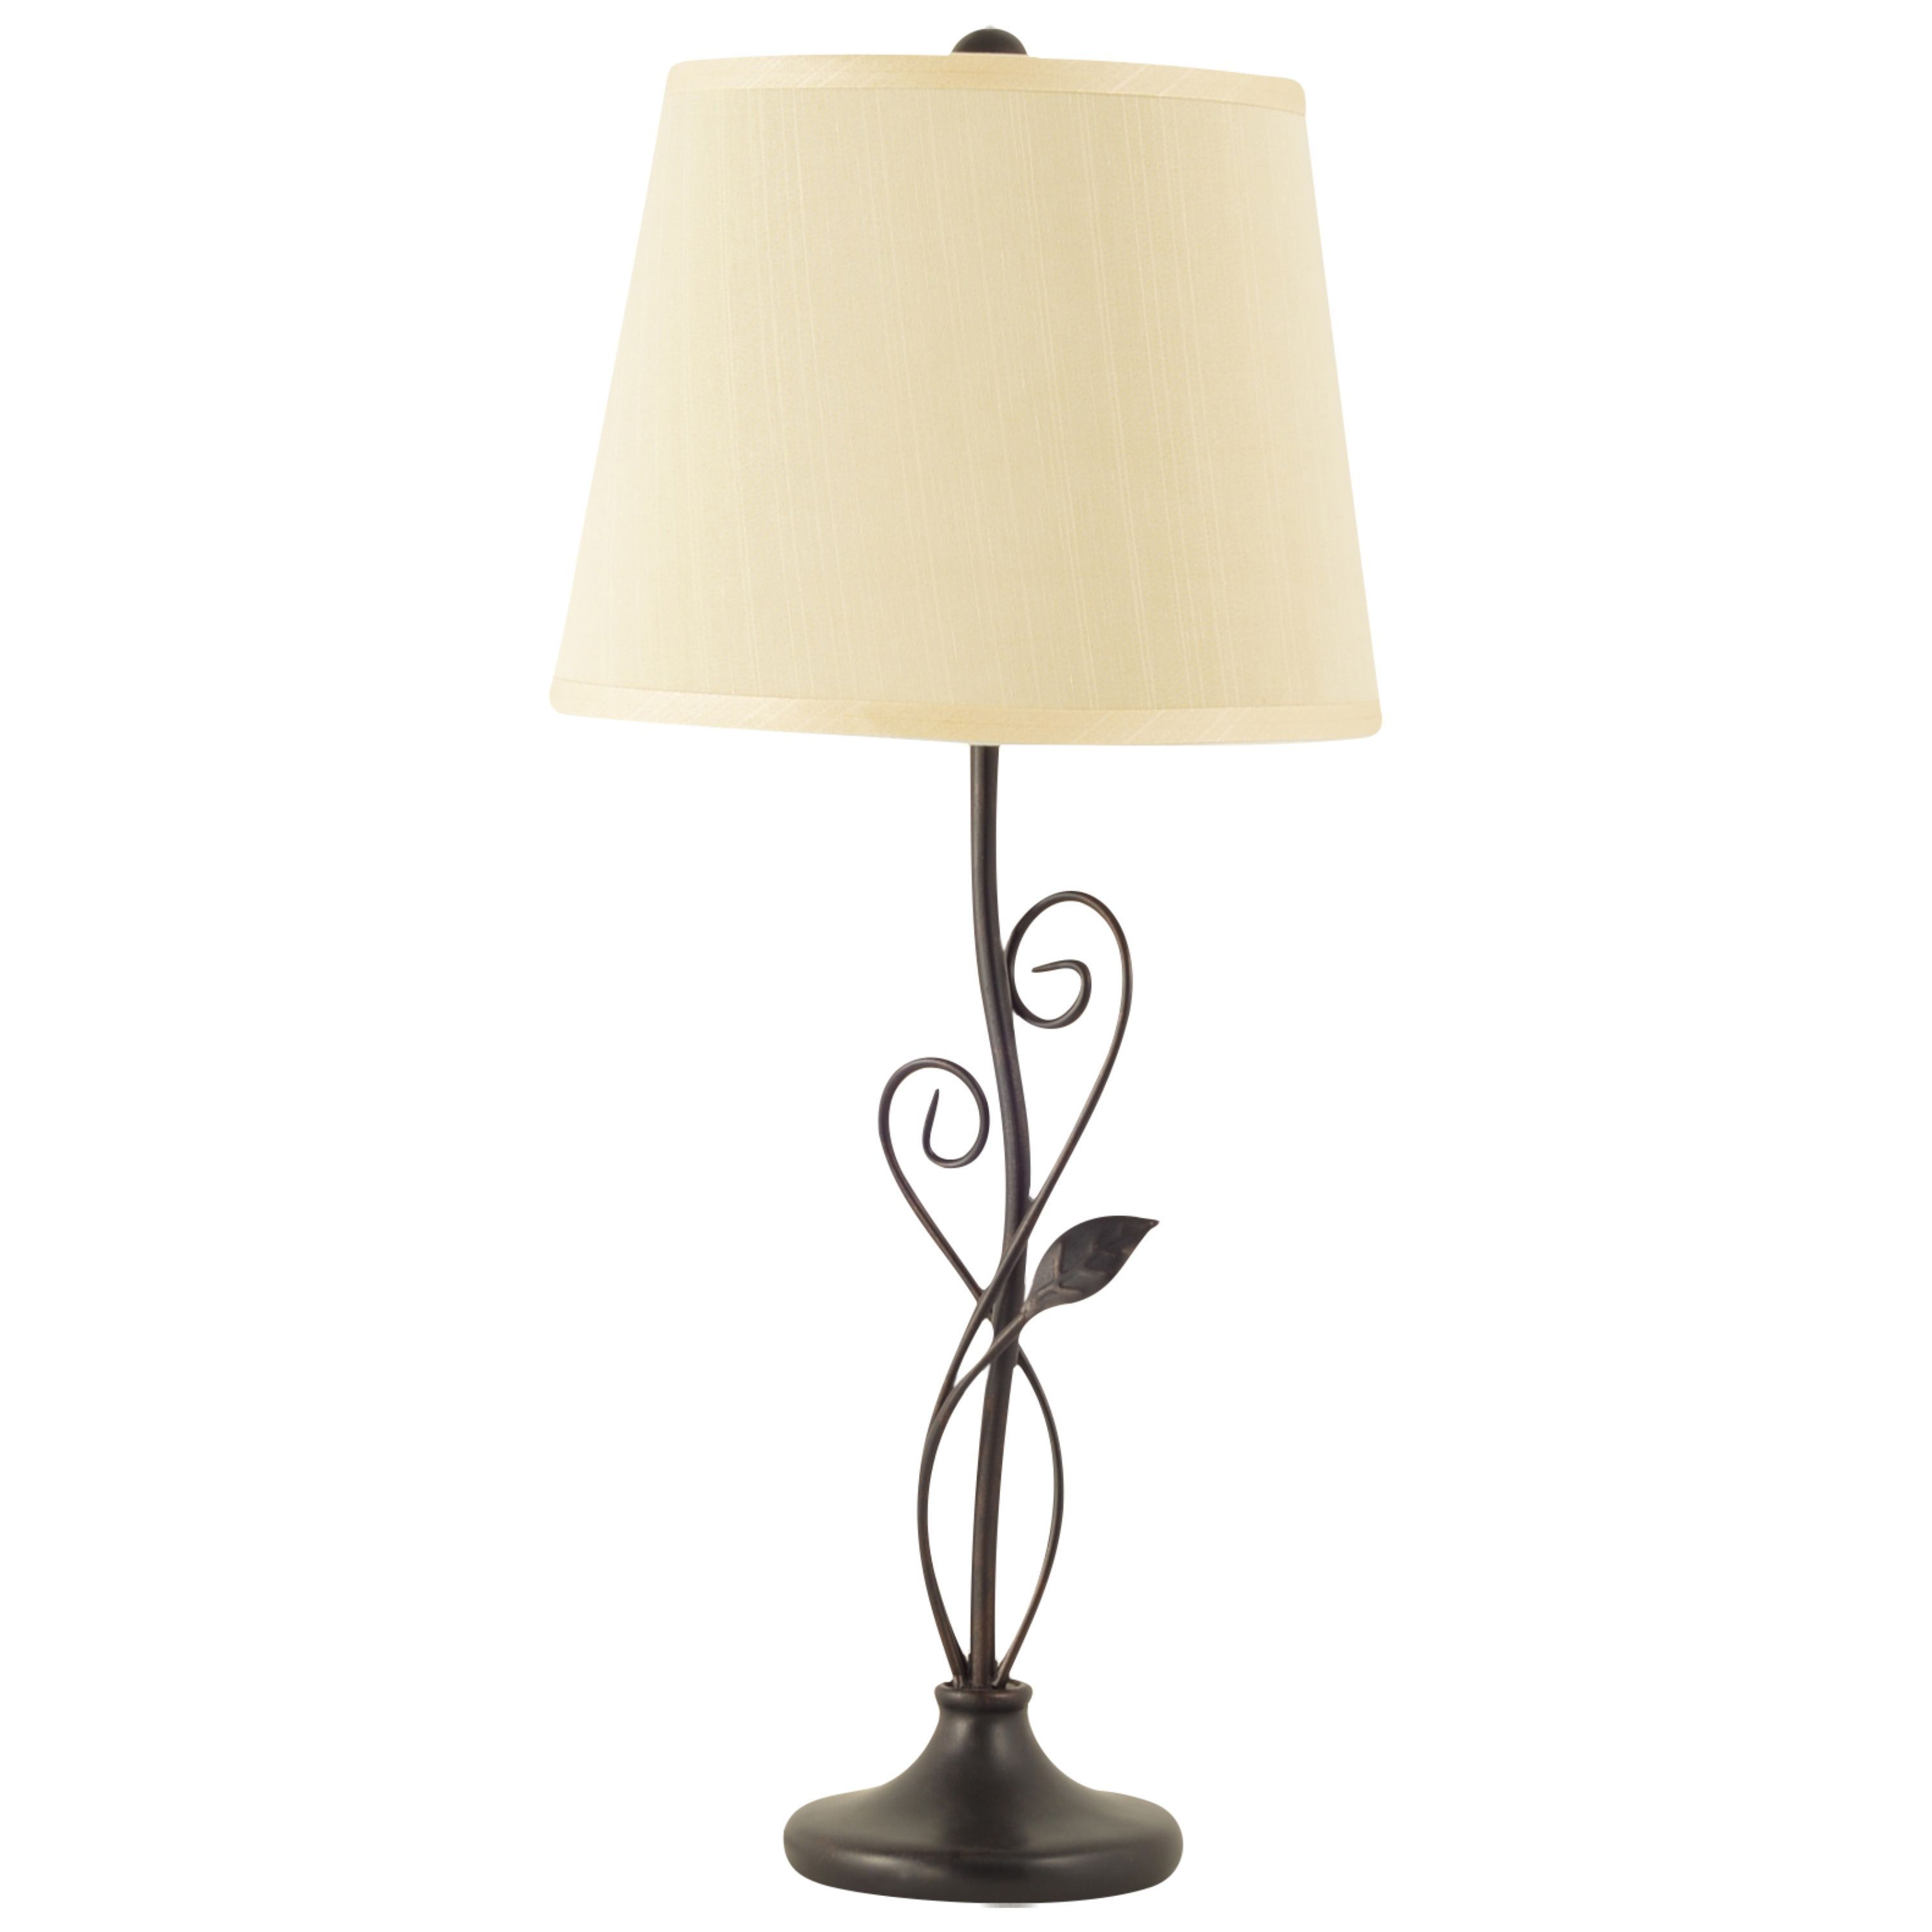 Design craft cirrus bronze 26 inch table lamp by design craft an oil rubbed sophisticated bronze table lamp adds accentual curves and lines to any geotapseo Choice Image